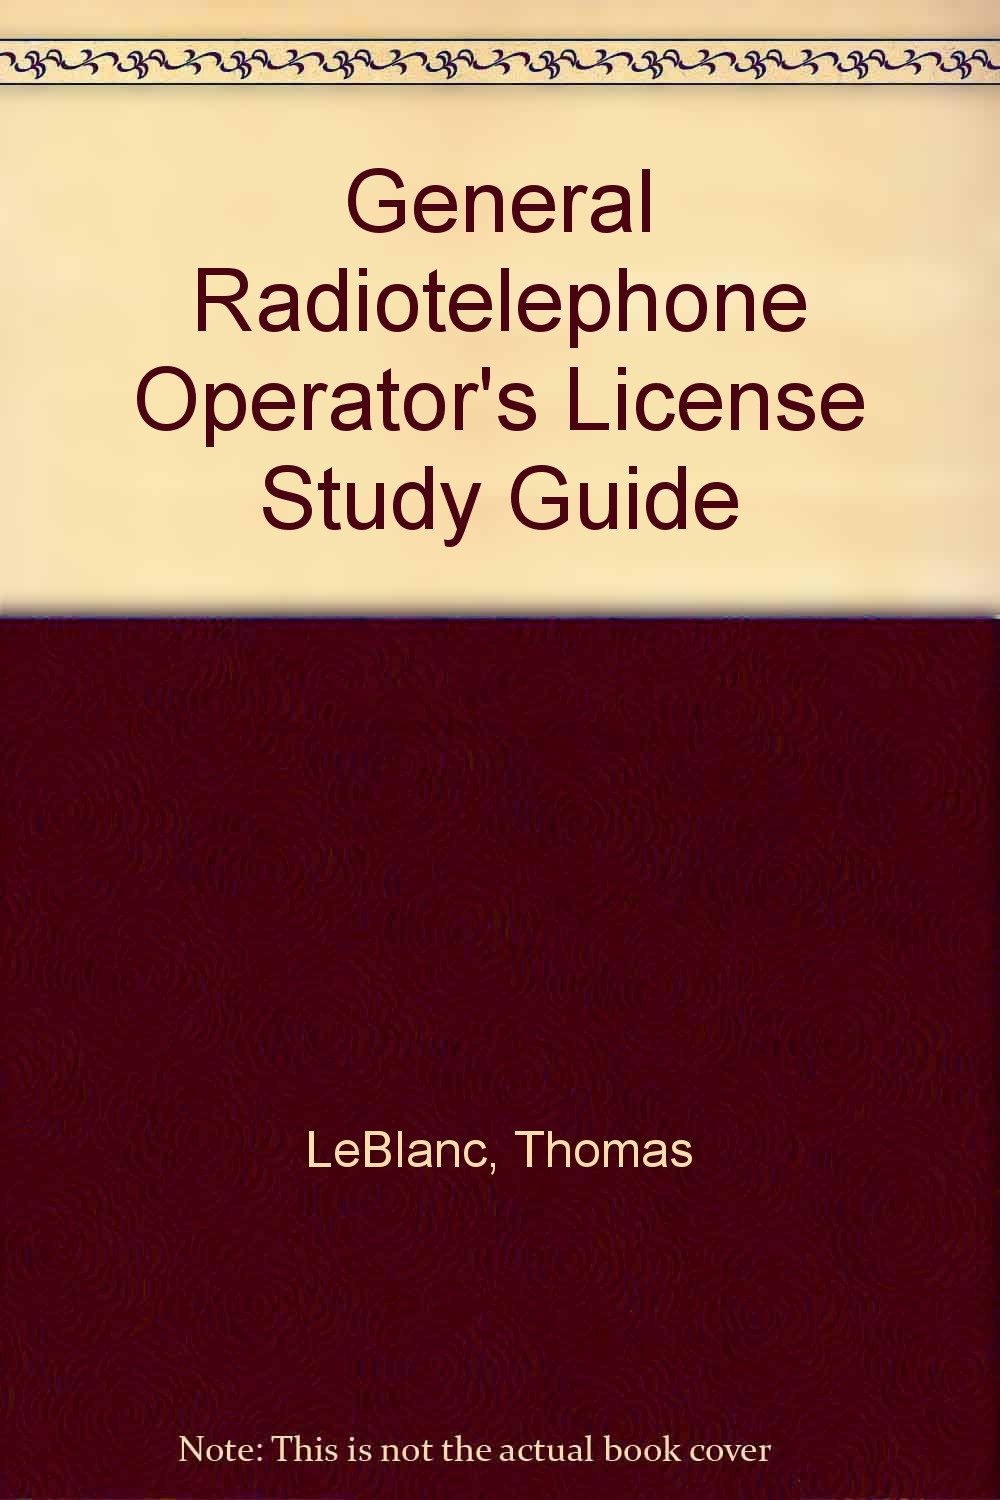 Buy General Radiotelephone Operator's License Study Guide Book Online at  Low Prices in India | General Radiotelephone Operator's License Study Guide  Reviews ...